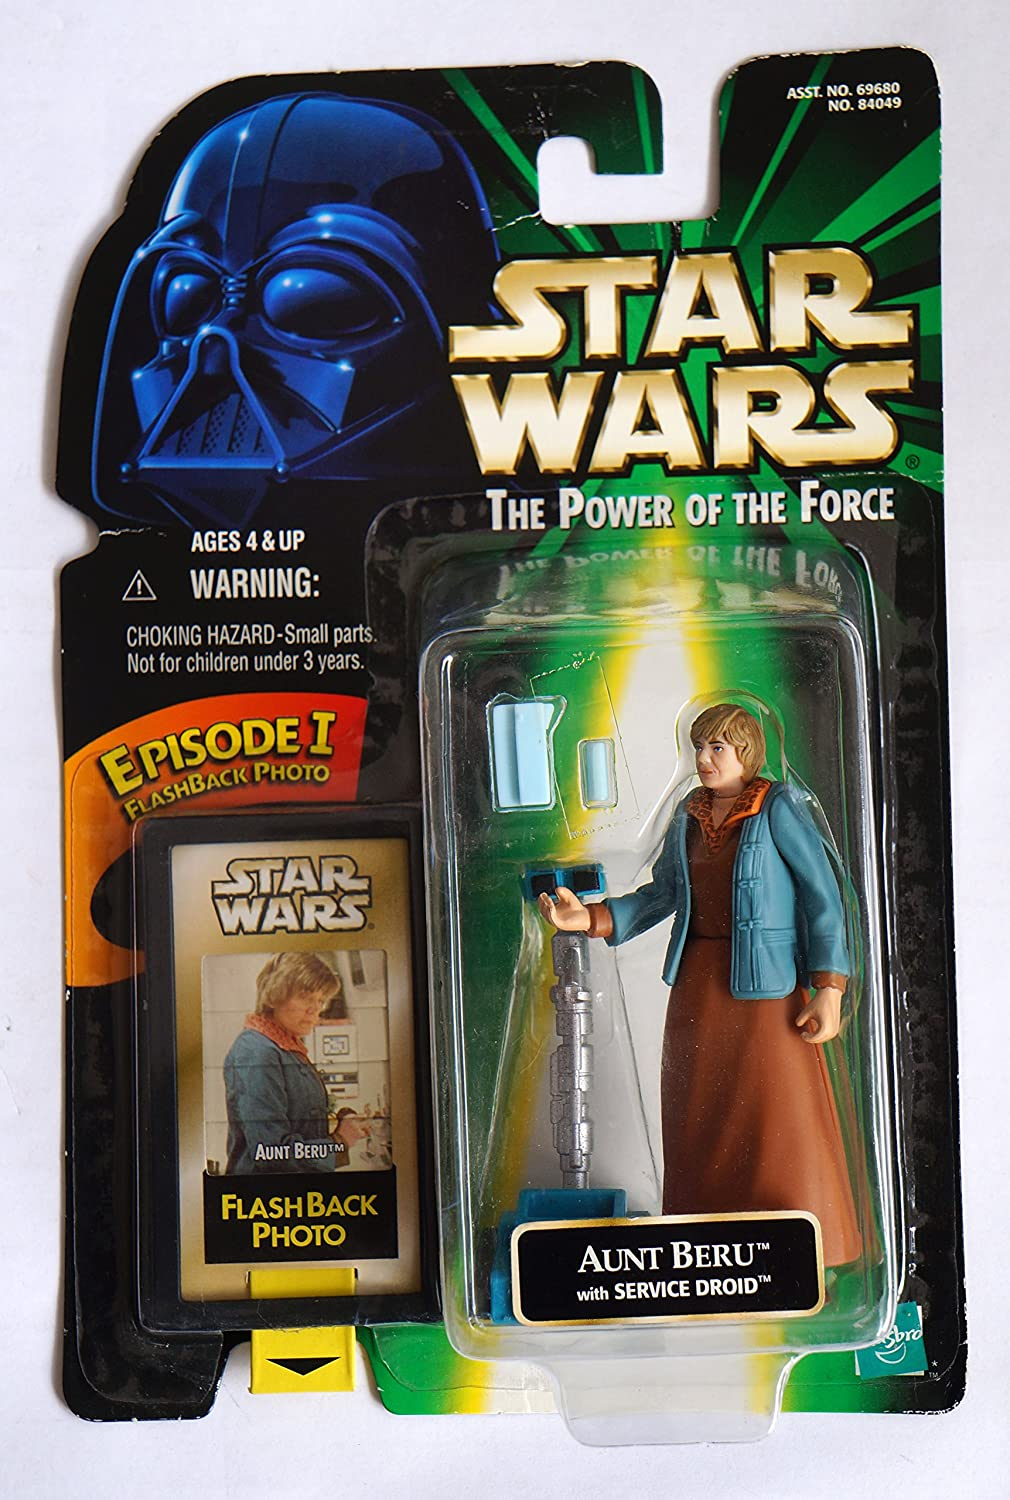 Star Wars The Power of the Force Flashback Aunt Beru Action Figure